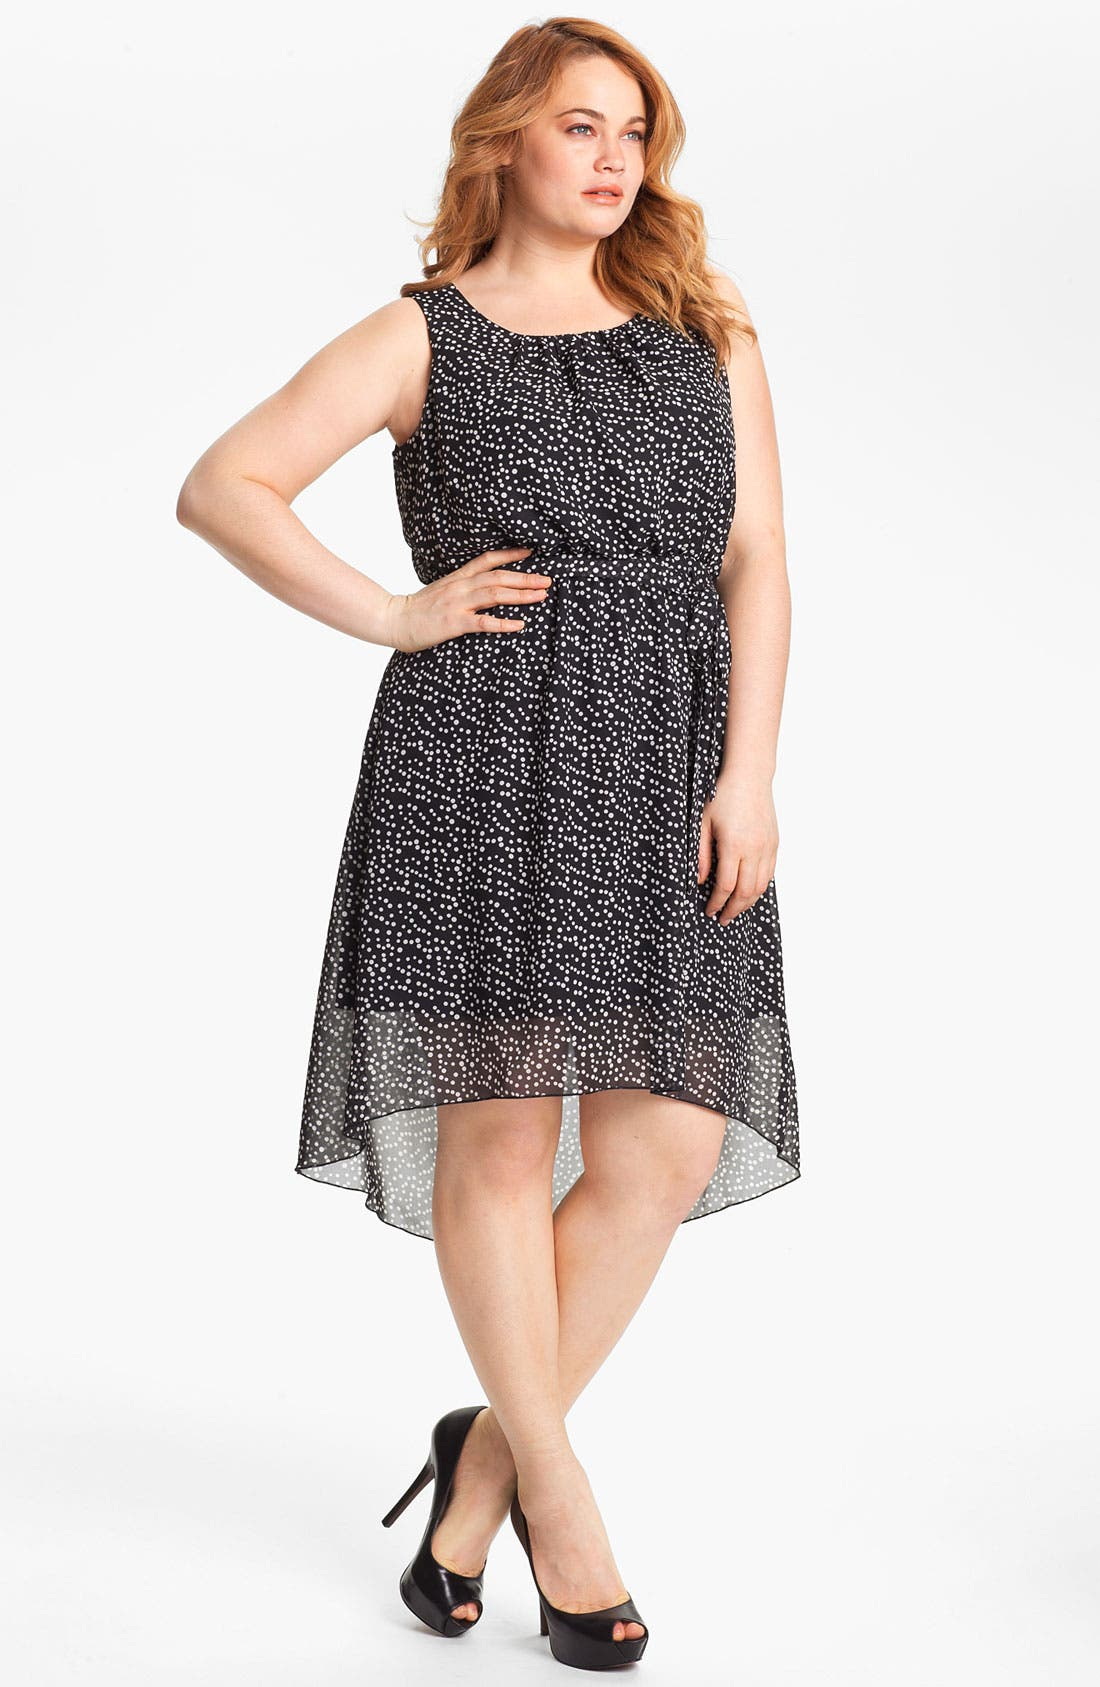 Alternate Image 1 Selected - Evans Polka Dot High/Low Chiffon Dress (Plus Size)